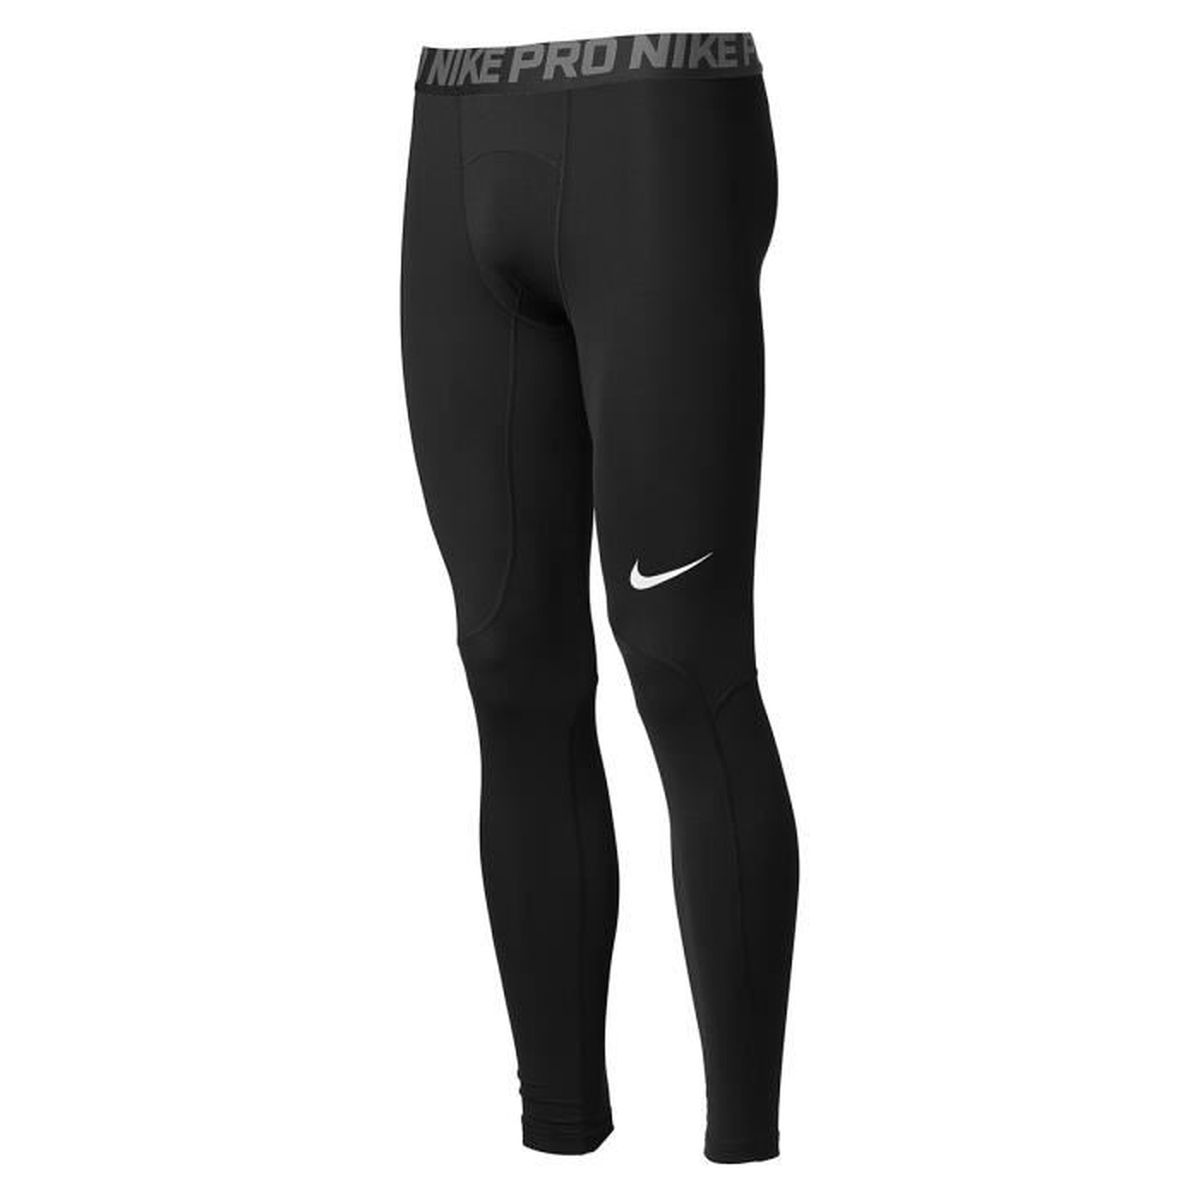 COLLANT DE RUNNING NIKE Collant Pro Tights - Homme - Noir